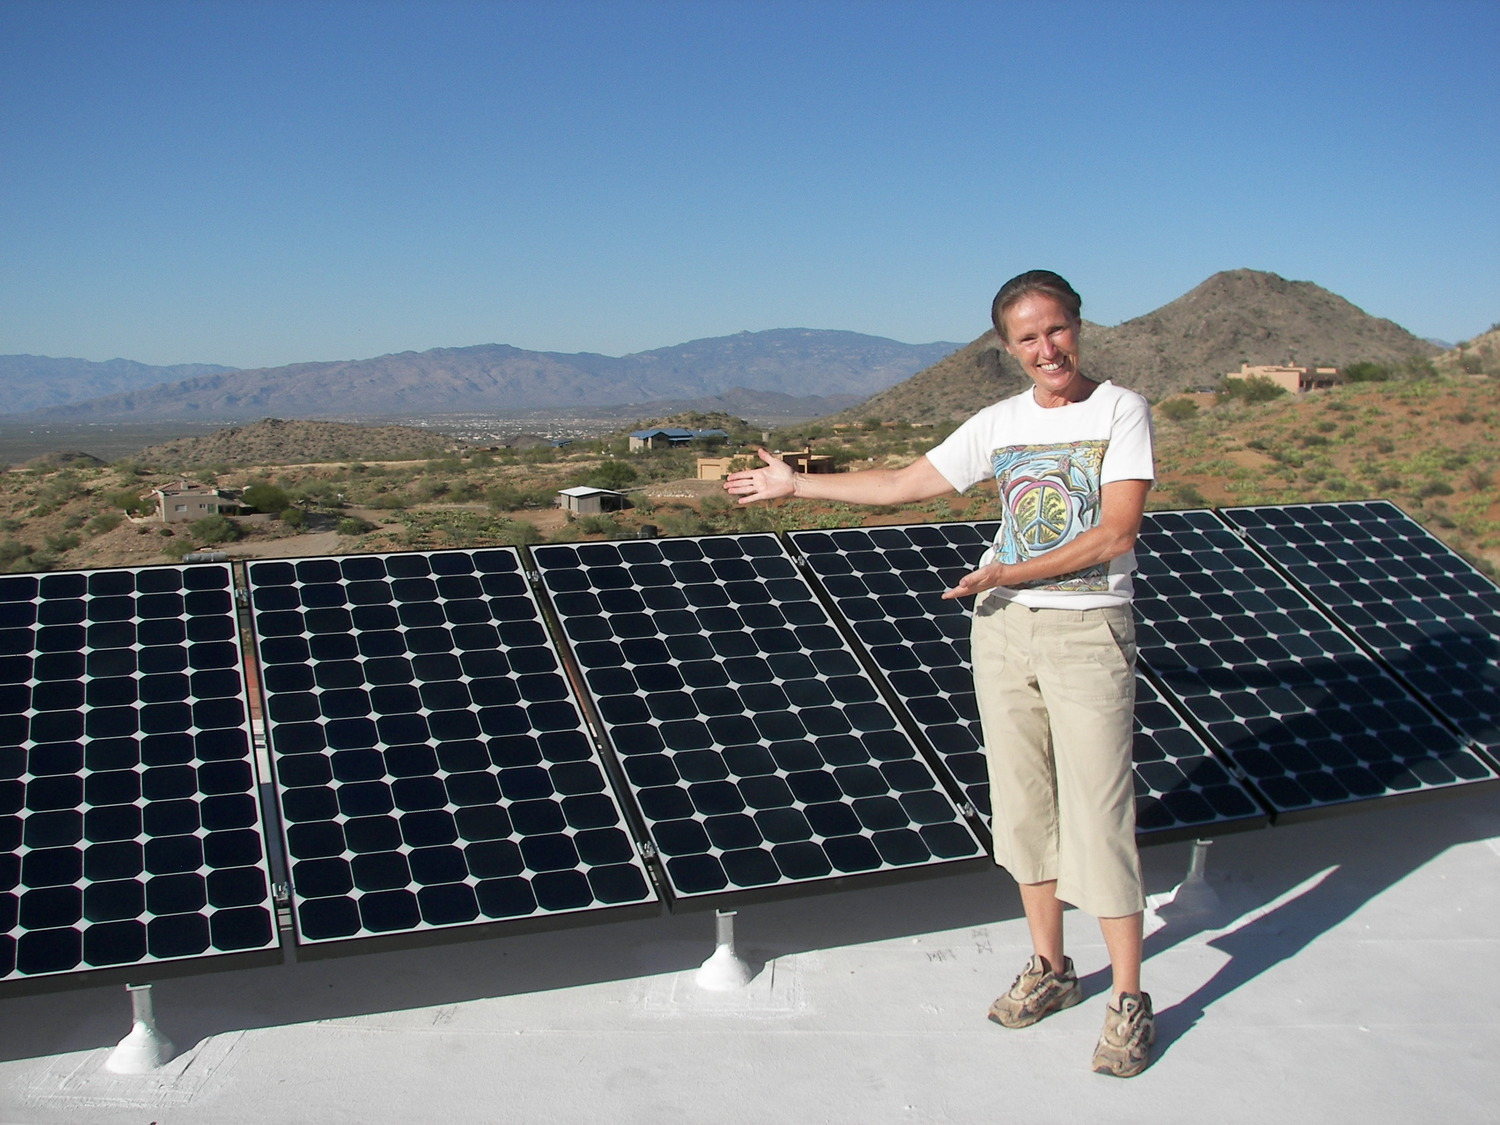 How It Works Technicians For Sustainability Tucson Solar Panel Solarpvdiagramhowitworksjpg